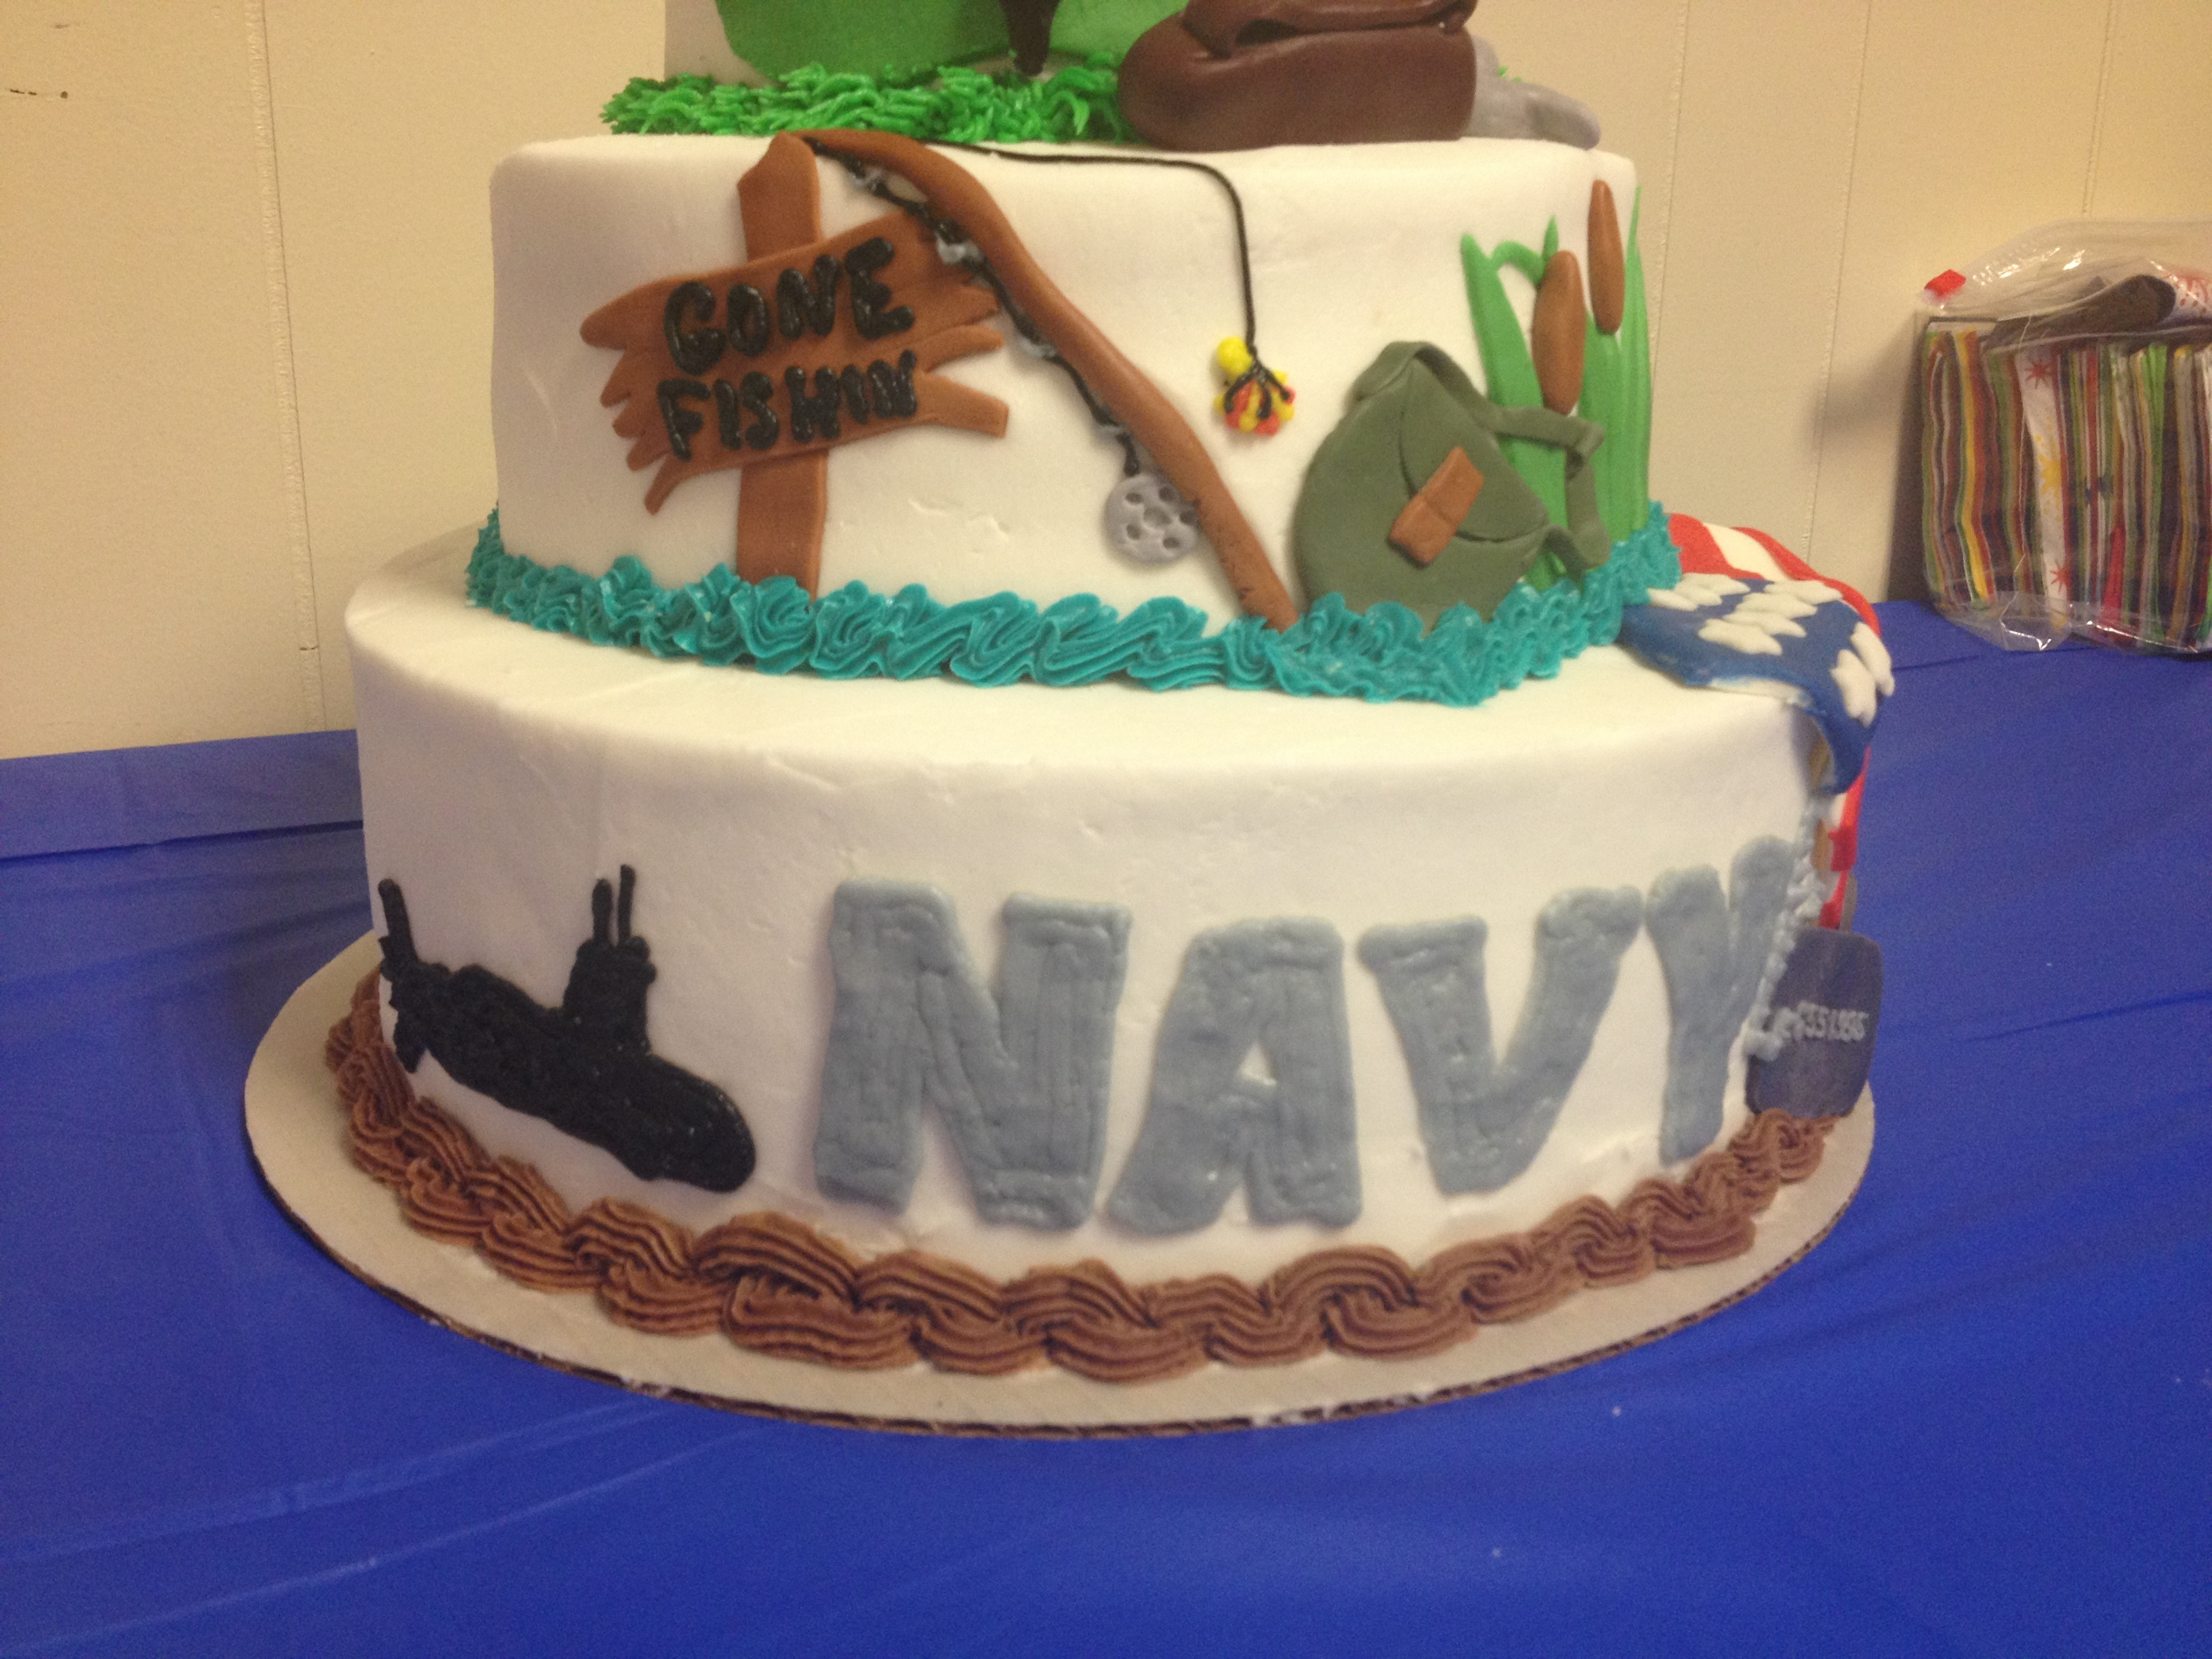 Navy Birthday Cake 90th Birthday Cake With Navy Tier Fishing Tier And Golf Tier